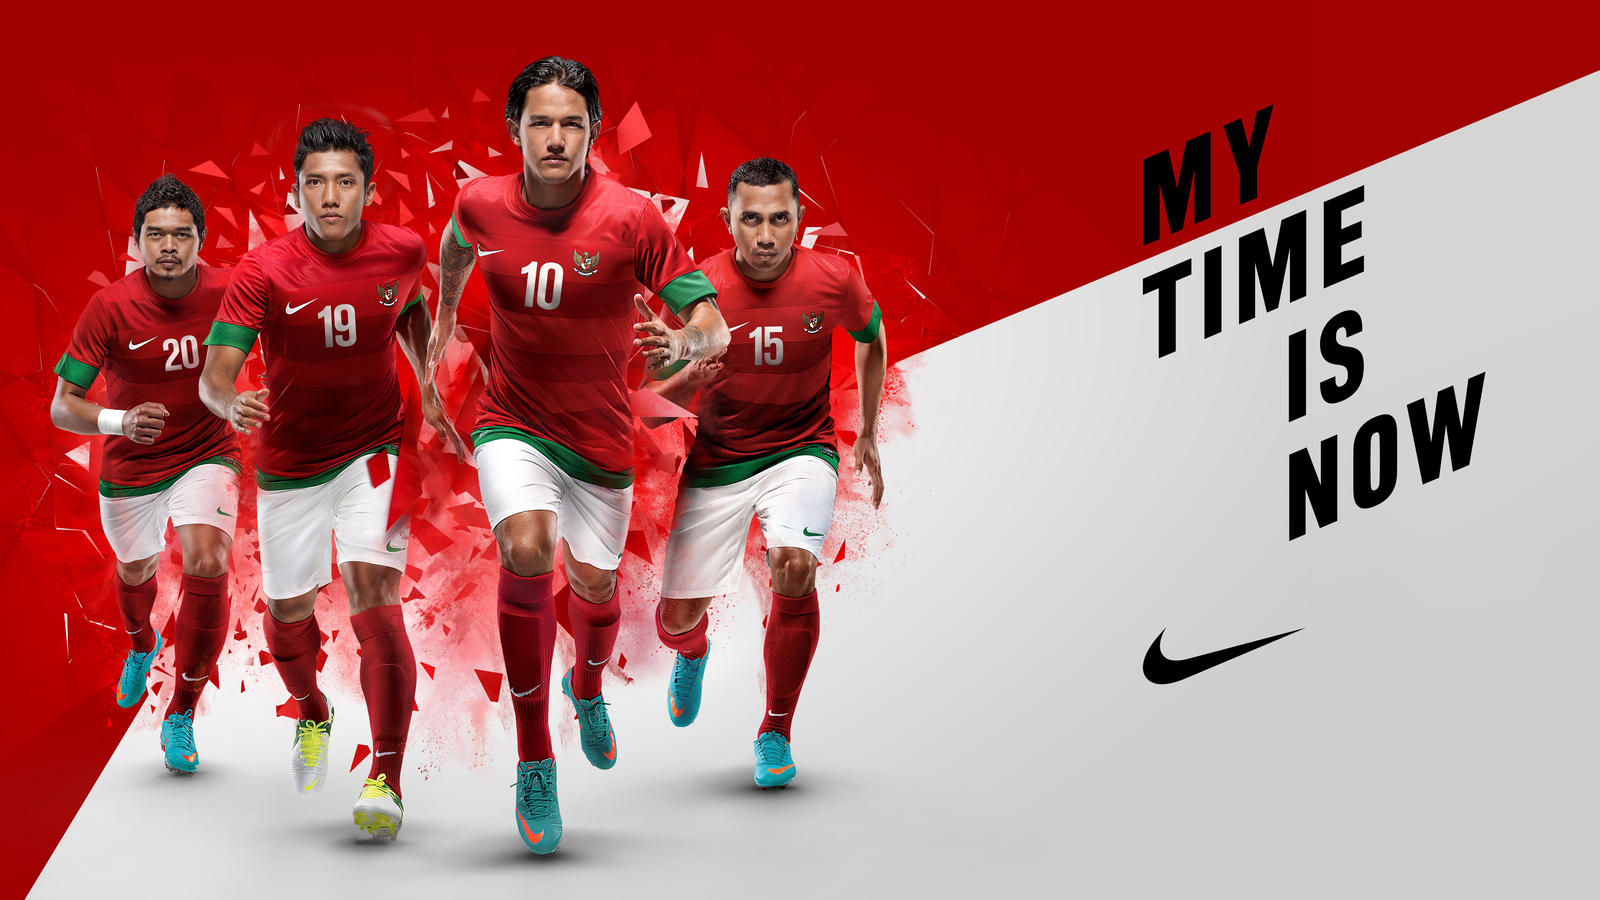 Indonesia National Team to debut new Nike team kit at ...